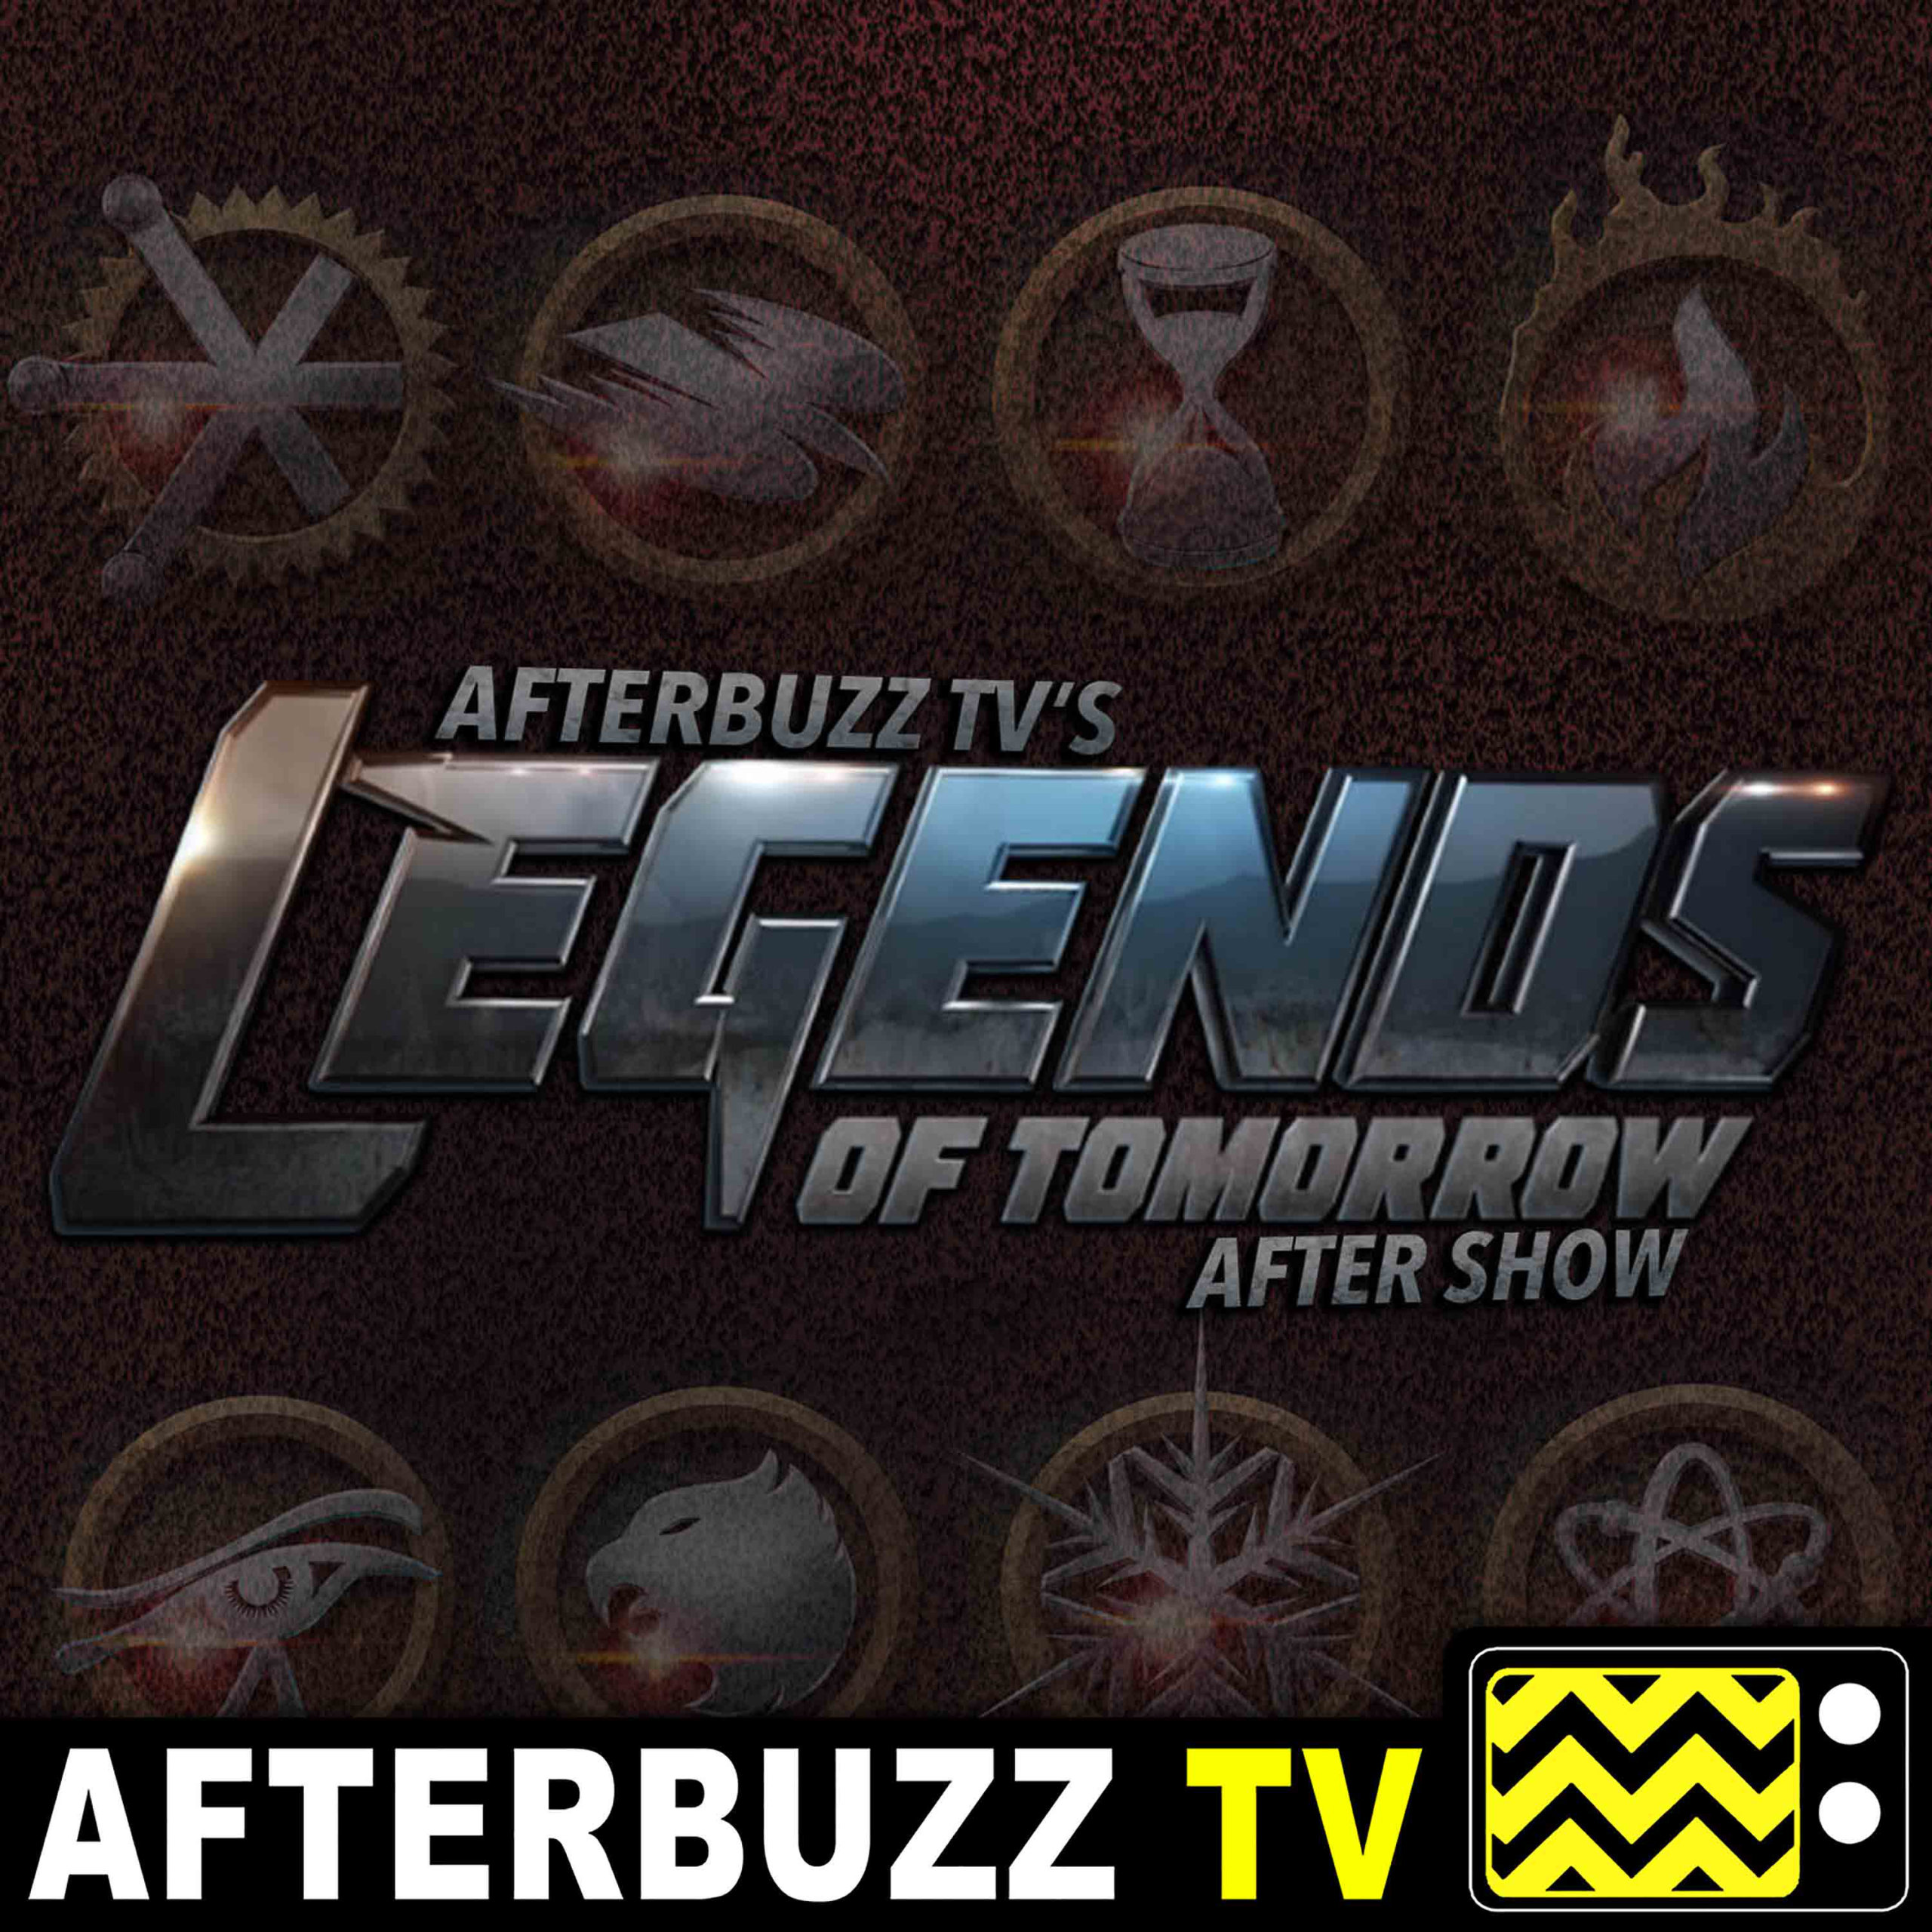 Legends Of Tomorrow S5 E15 Recap & After Show: A Date with the Fates